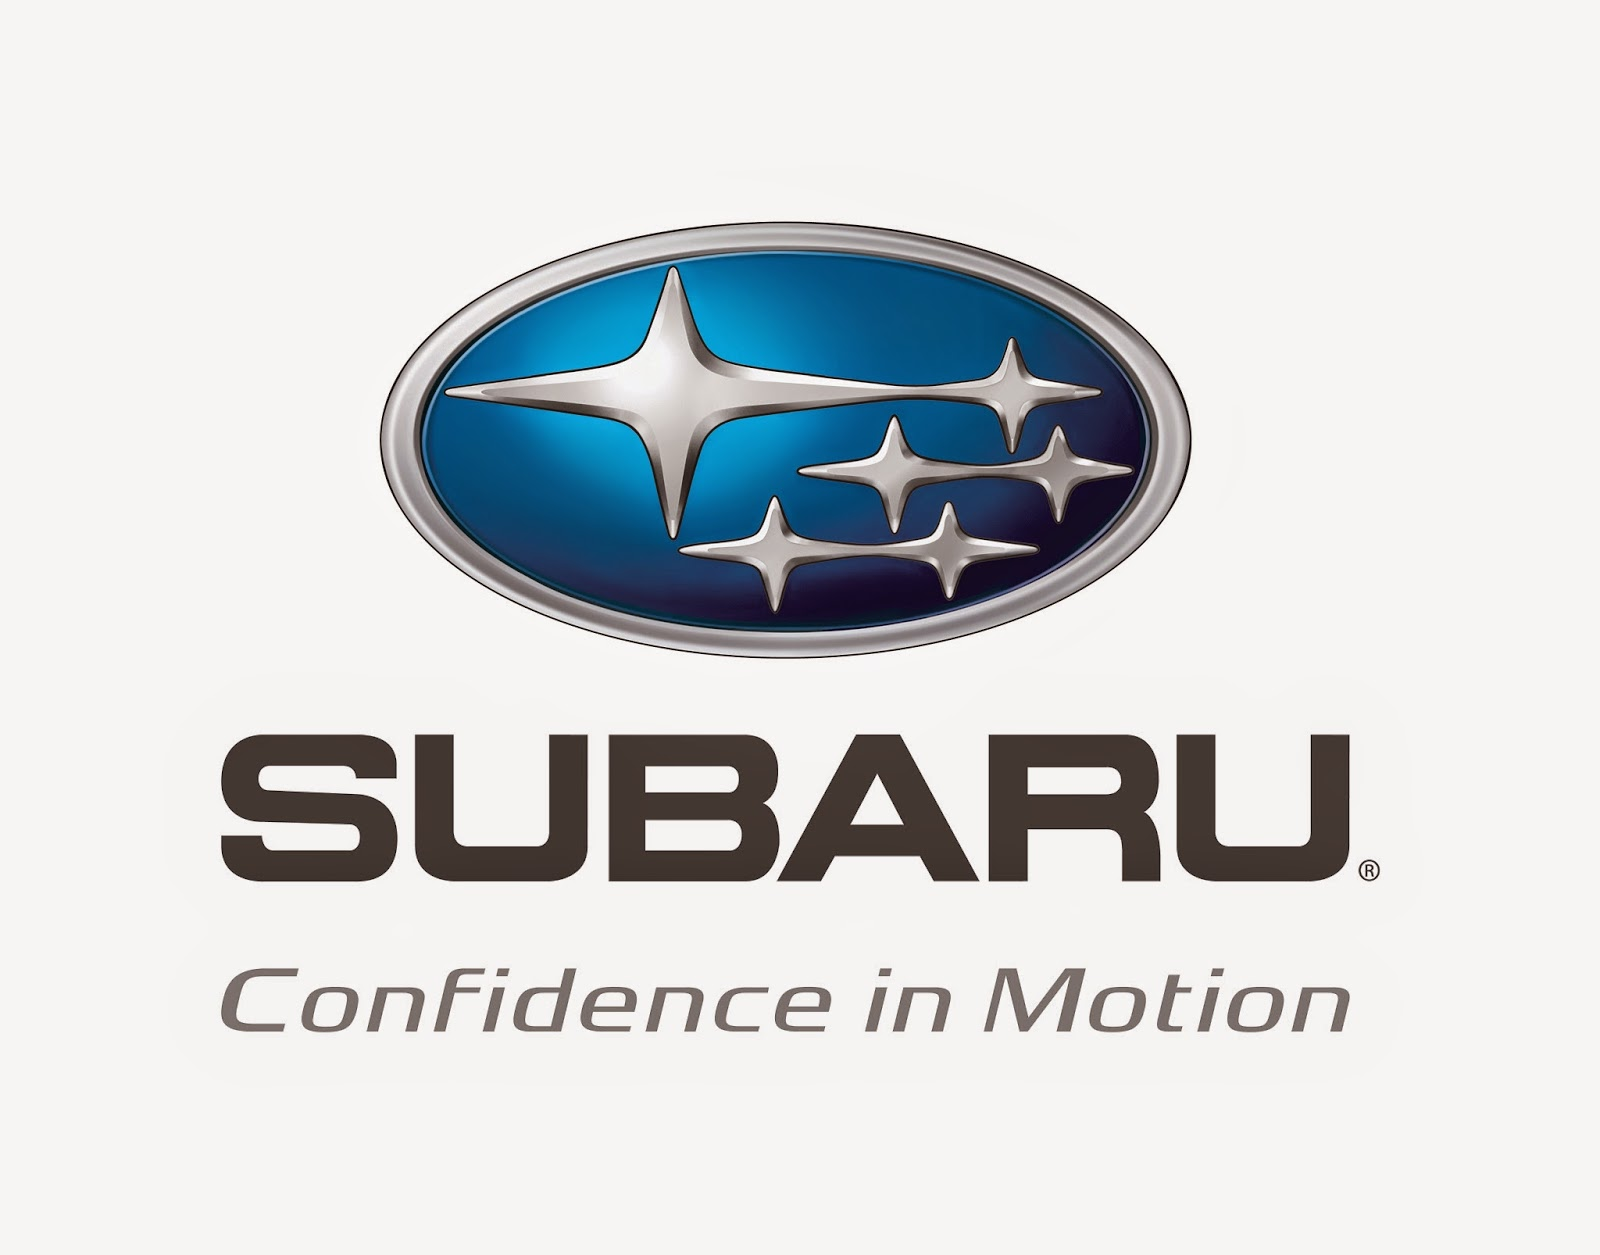 confidence in motion logo from subaru